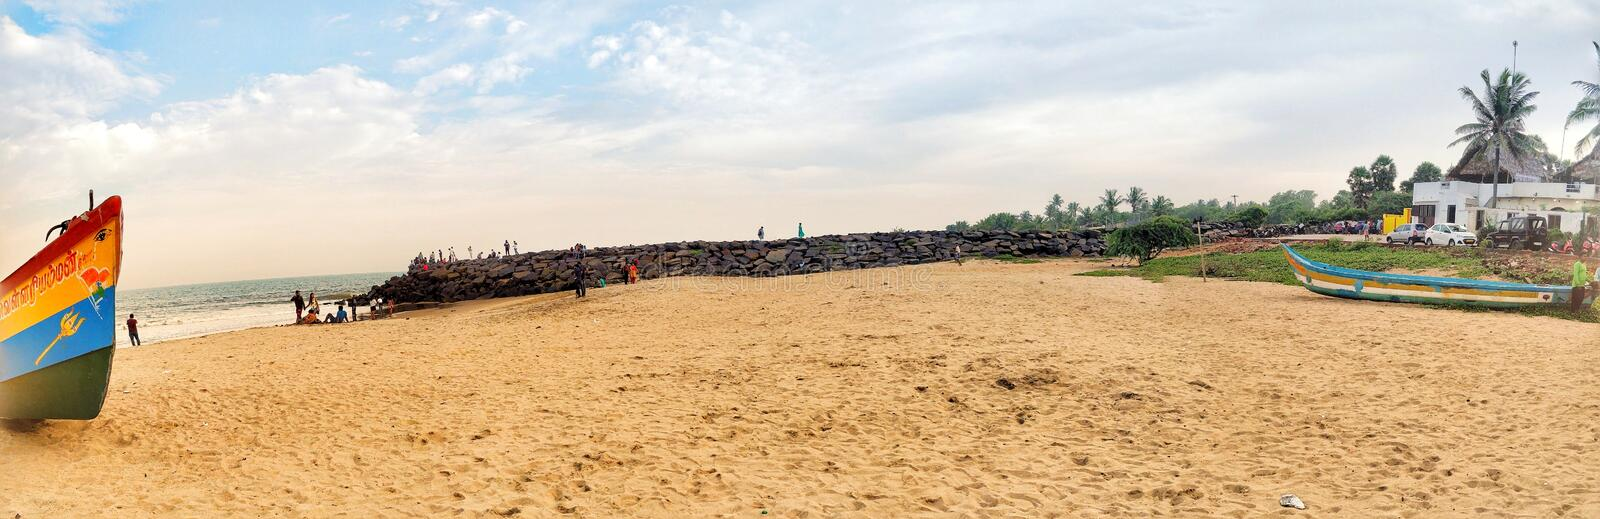 Auroville Beach royalty free stock image